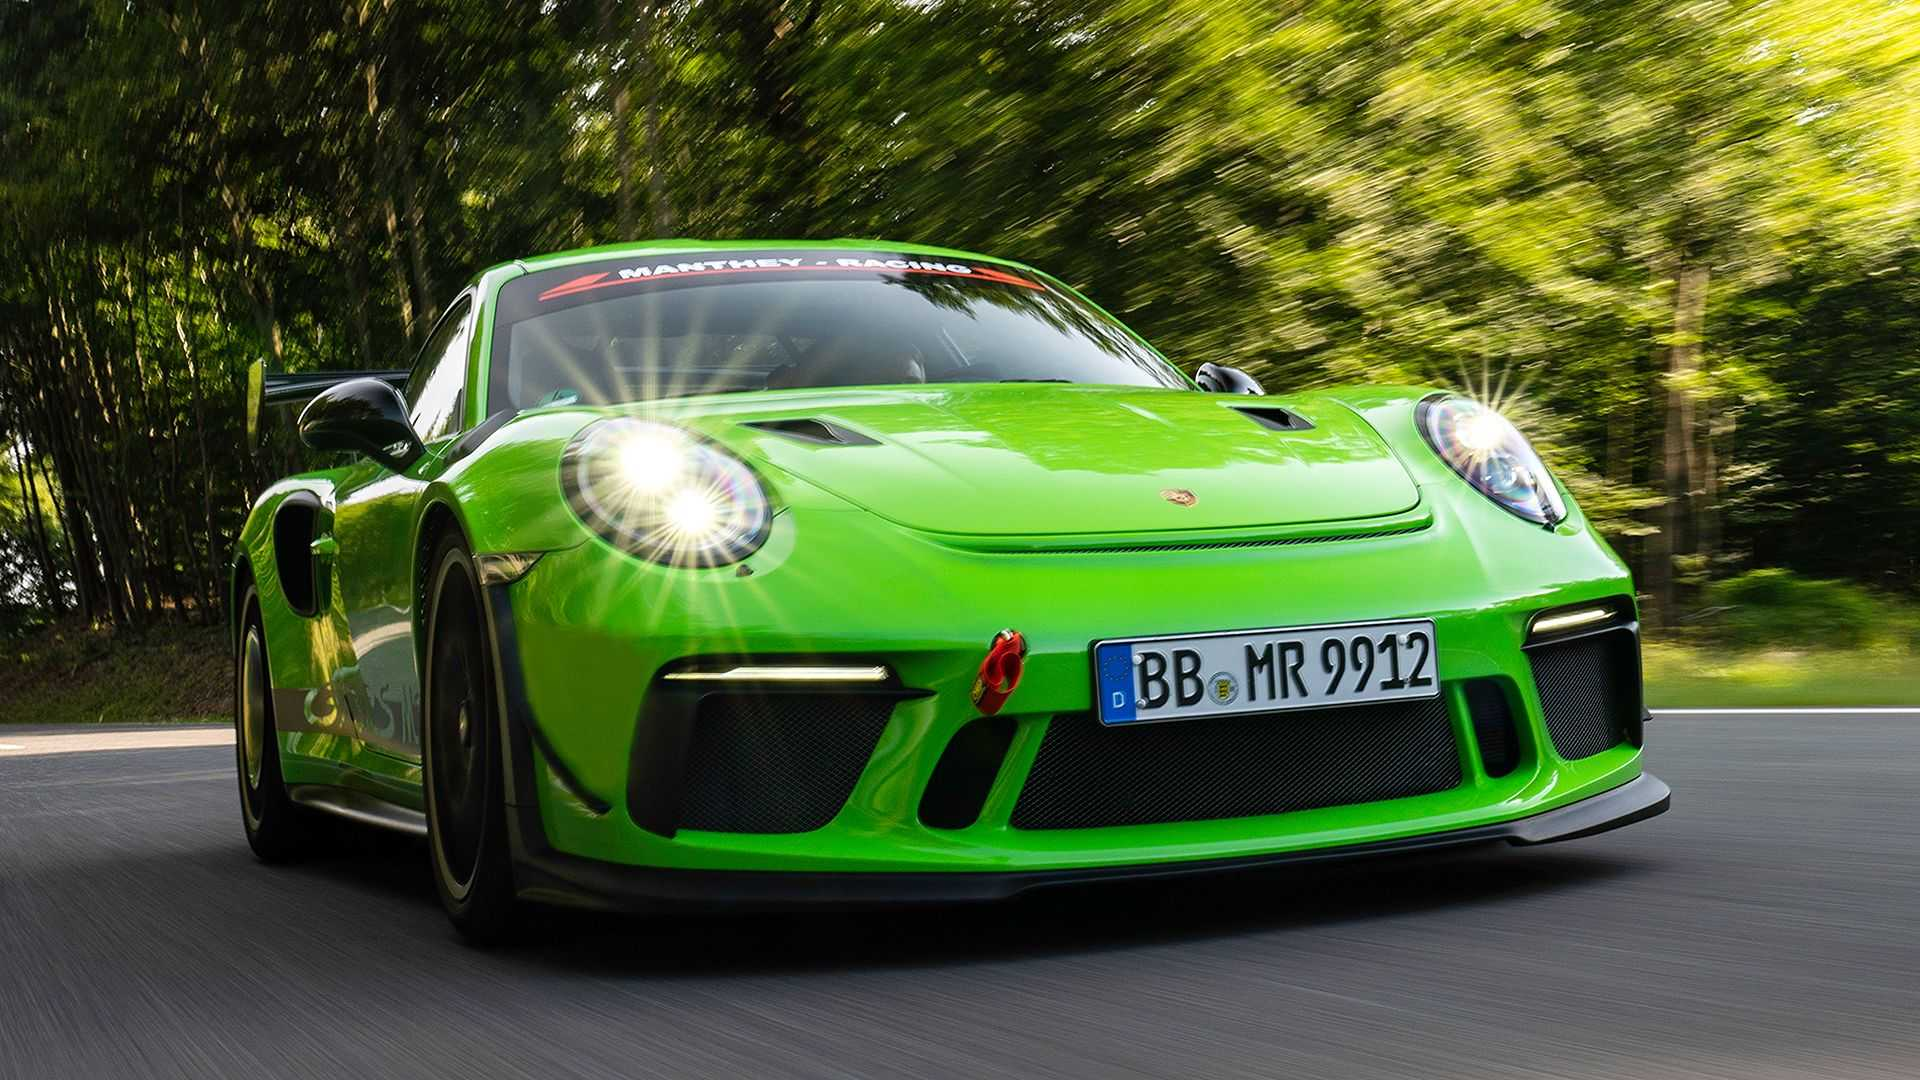 Porsche-911-GT3-RS-by-Manthey-Racing-2